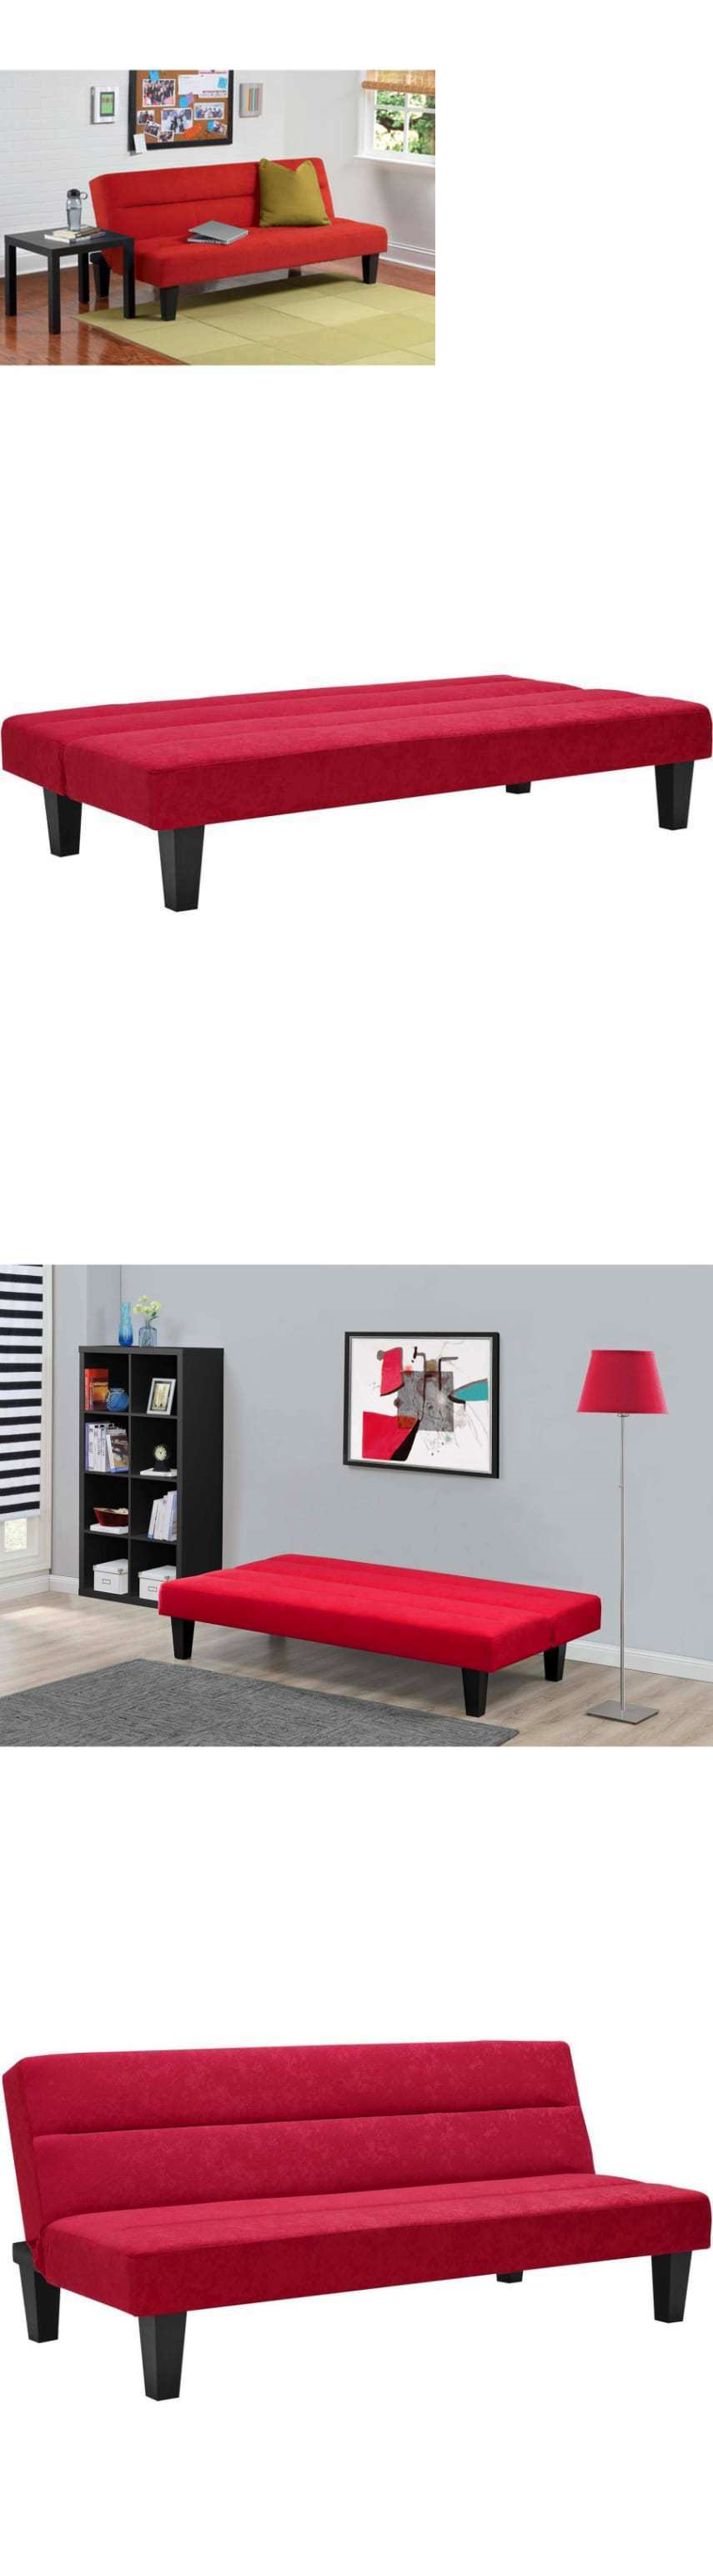 Futon sofa bed red - Futons Frames And Covers 131579 Kebo Futon Sofa Bed Red Dorm Bed